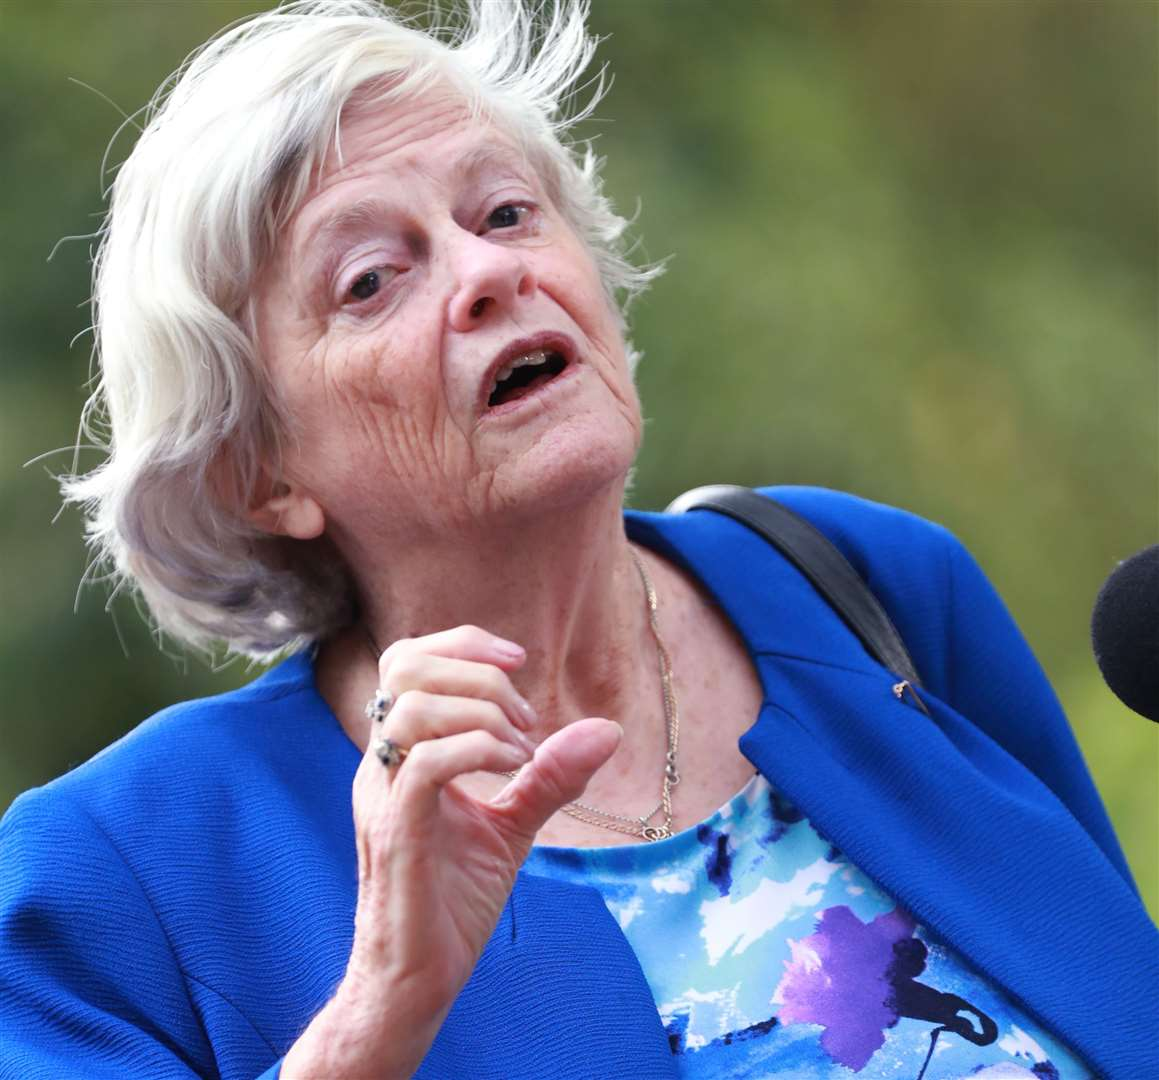 Former Tory MP Ann Widdecombe joined the Brexit Party